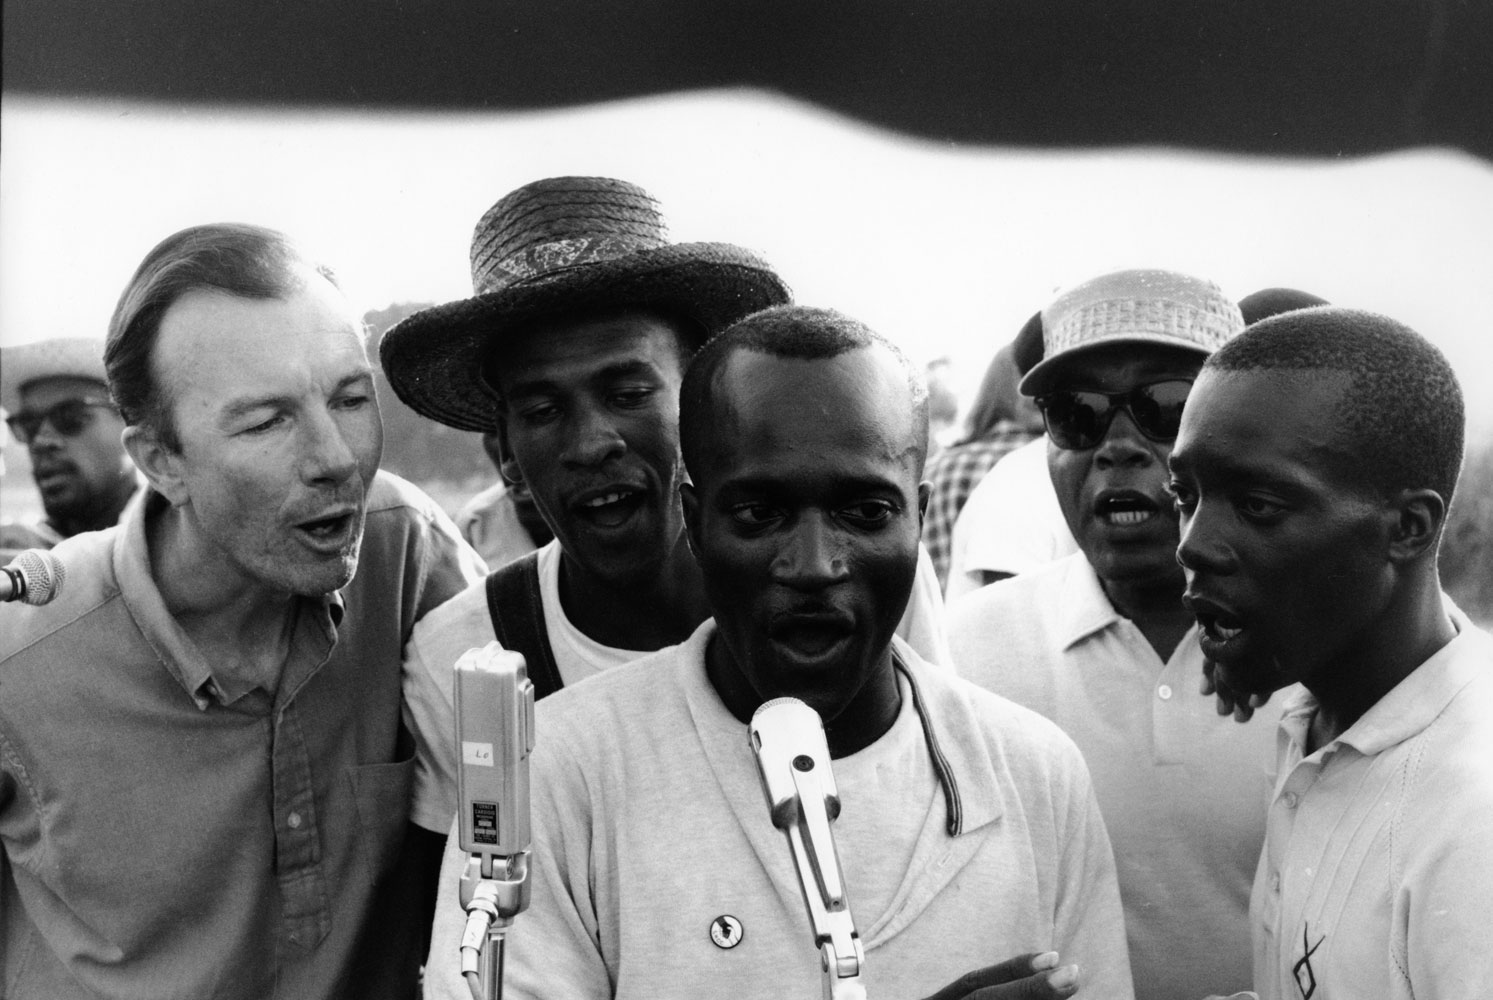 American folksinger and activist Pete Seeger sings with fellow activists at a Student Nonviolent Coordinating Committee (SNCC) rally, in Greenwood, Miss., in 1963.